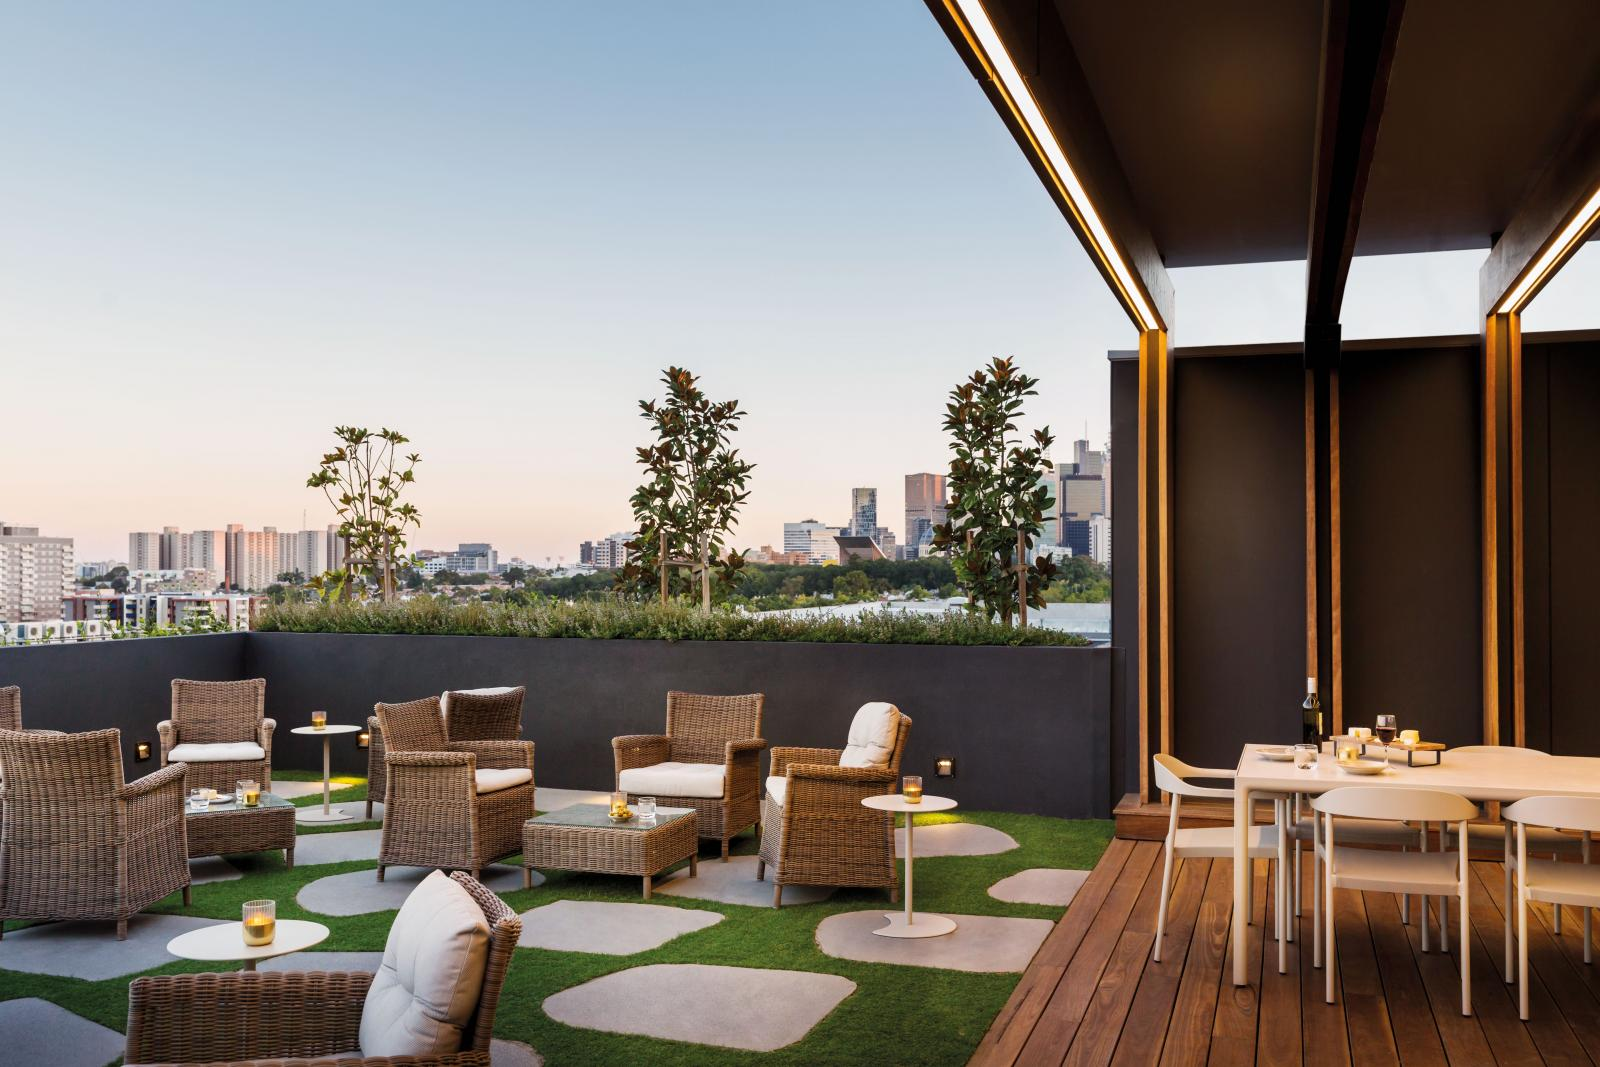 The rooftop terrace at Drummond Place